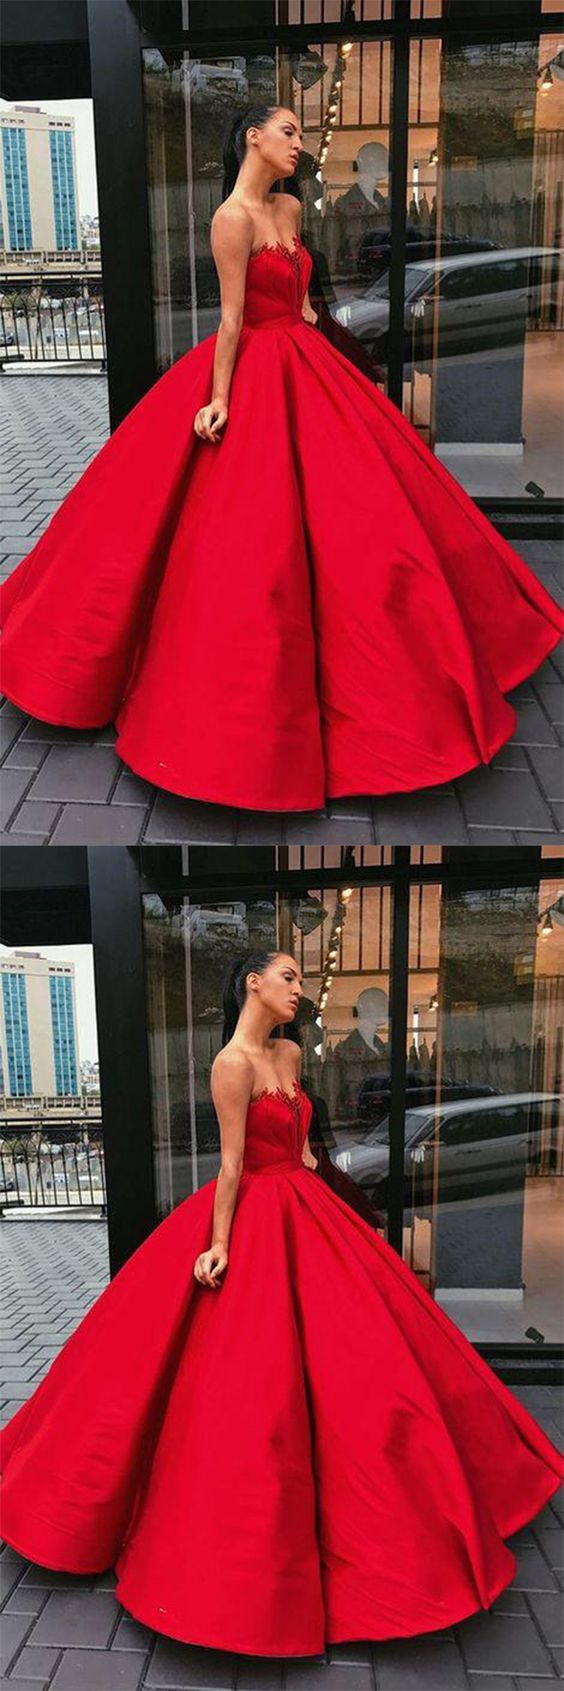 Charming Prom Dress,Red Prom Dresses,Ball Gown Prom Dress,Satin Prom ...